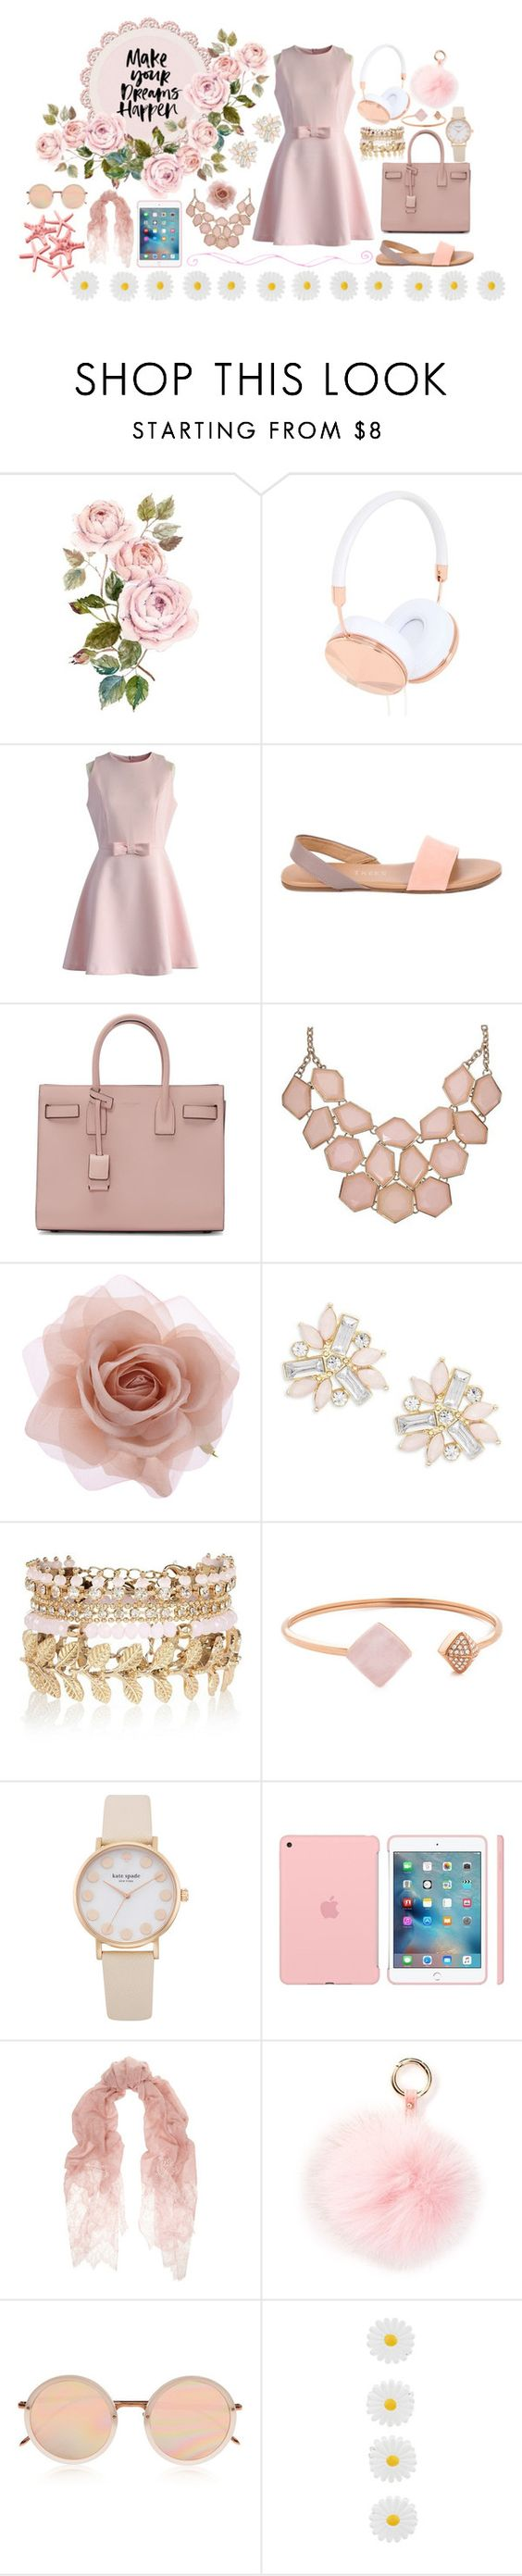 """""""The dreamer"""" by sillytan ❤ liked on Polyvore featuring мода, Frends, Chicwish, Tkees, Yves Saint Laurent, Accessorize, Cara, River Island, Michael Kors и Valentino"""